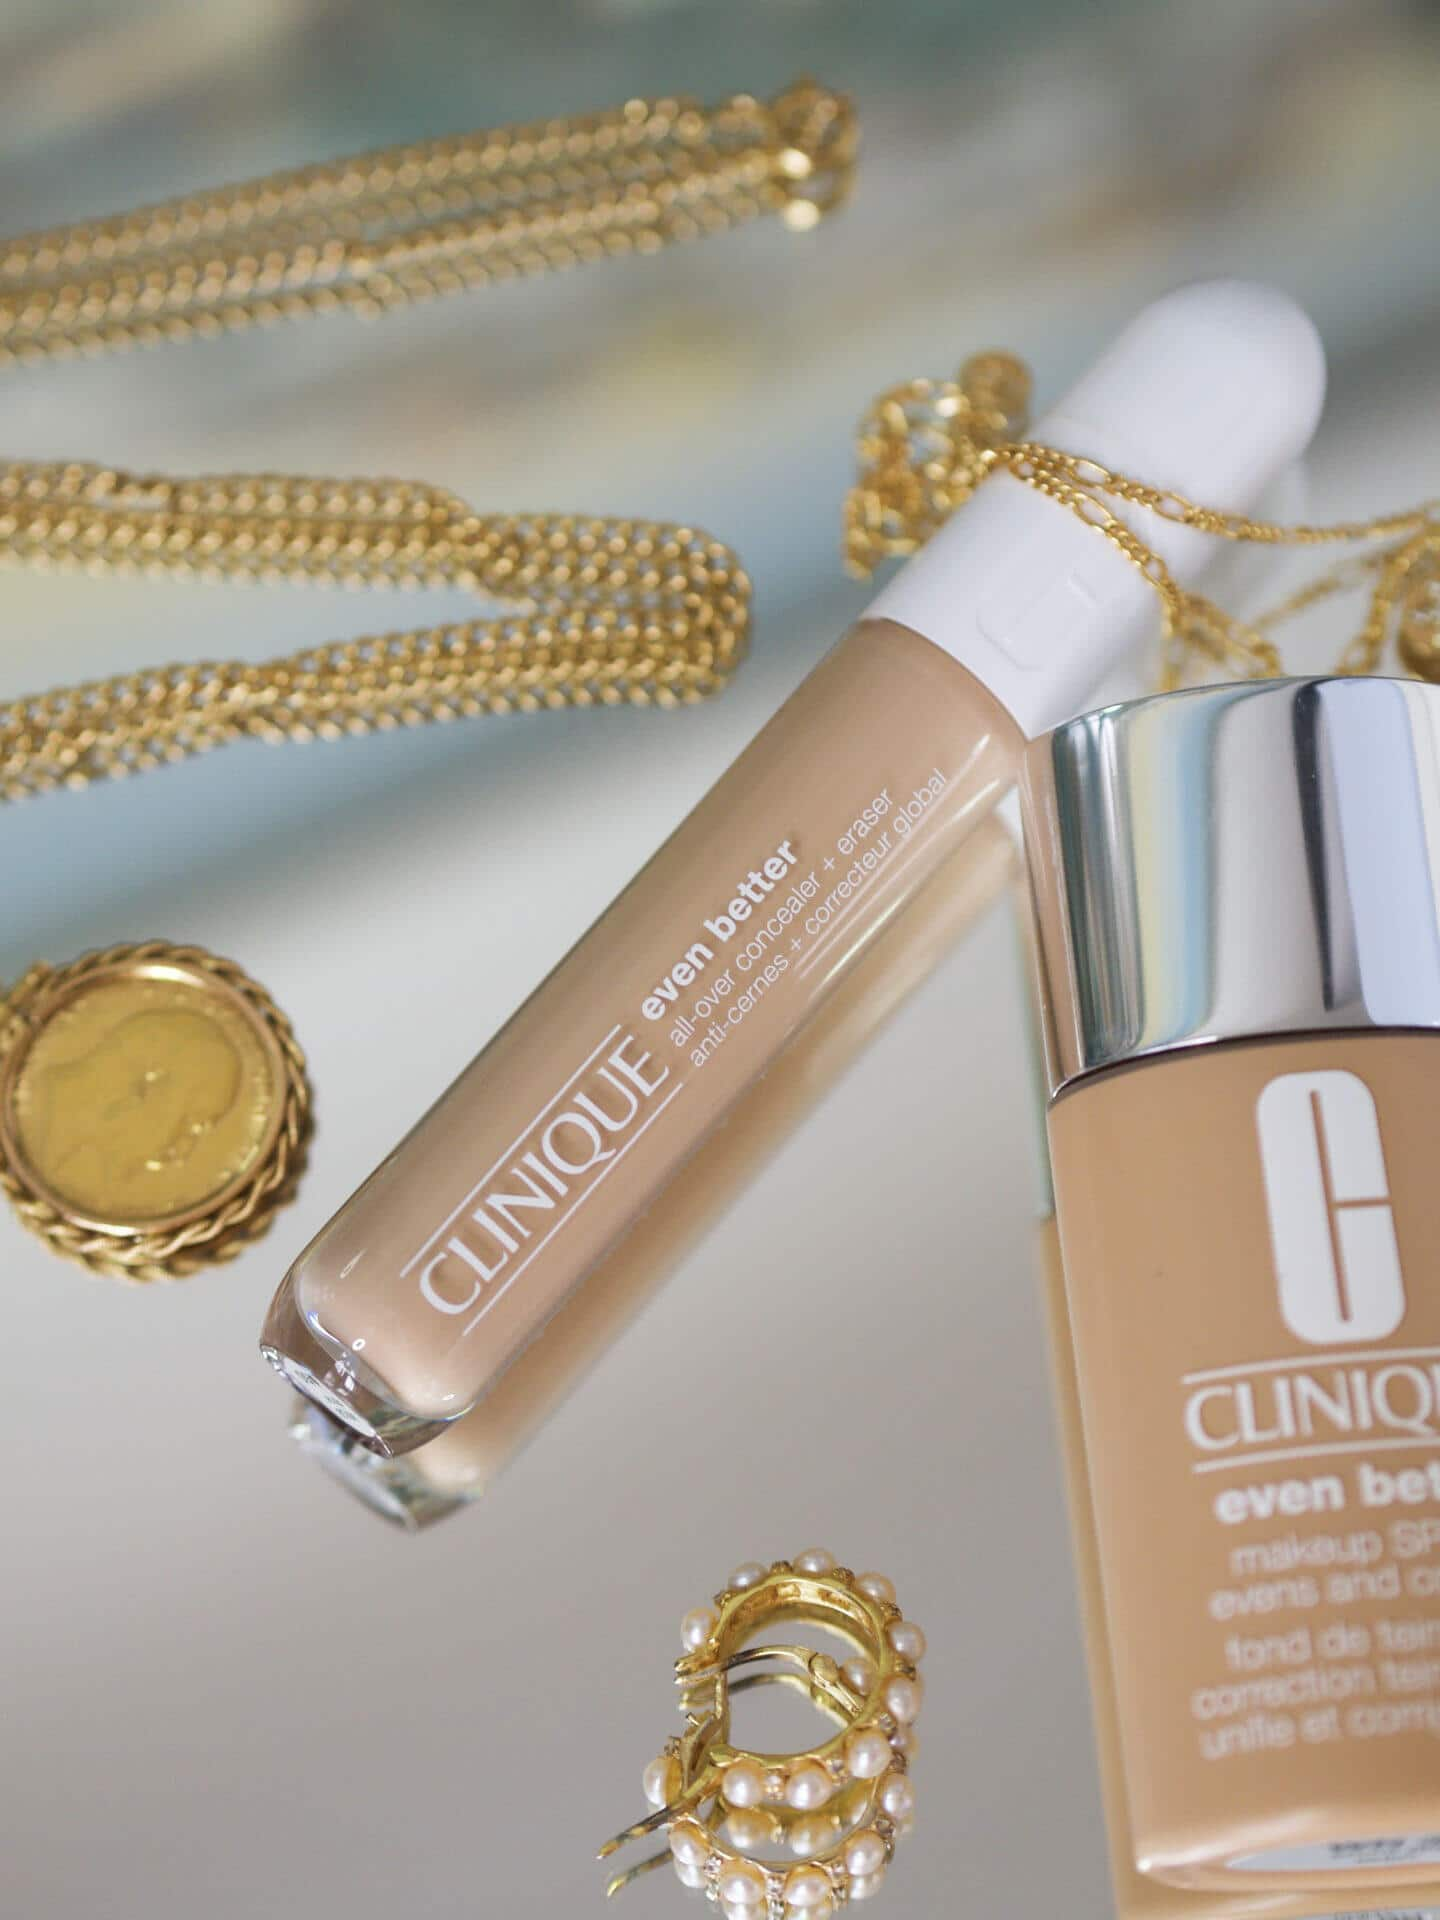 Clinique Even Better All Over Concealer